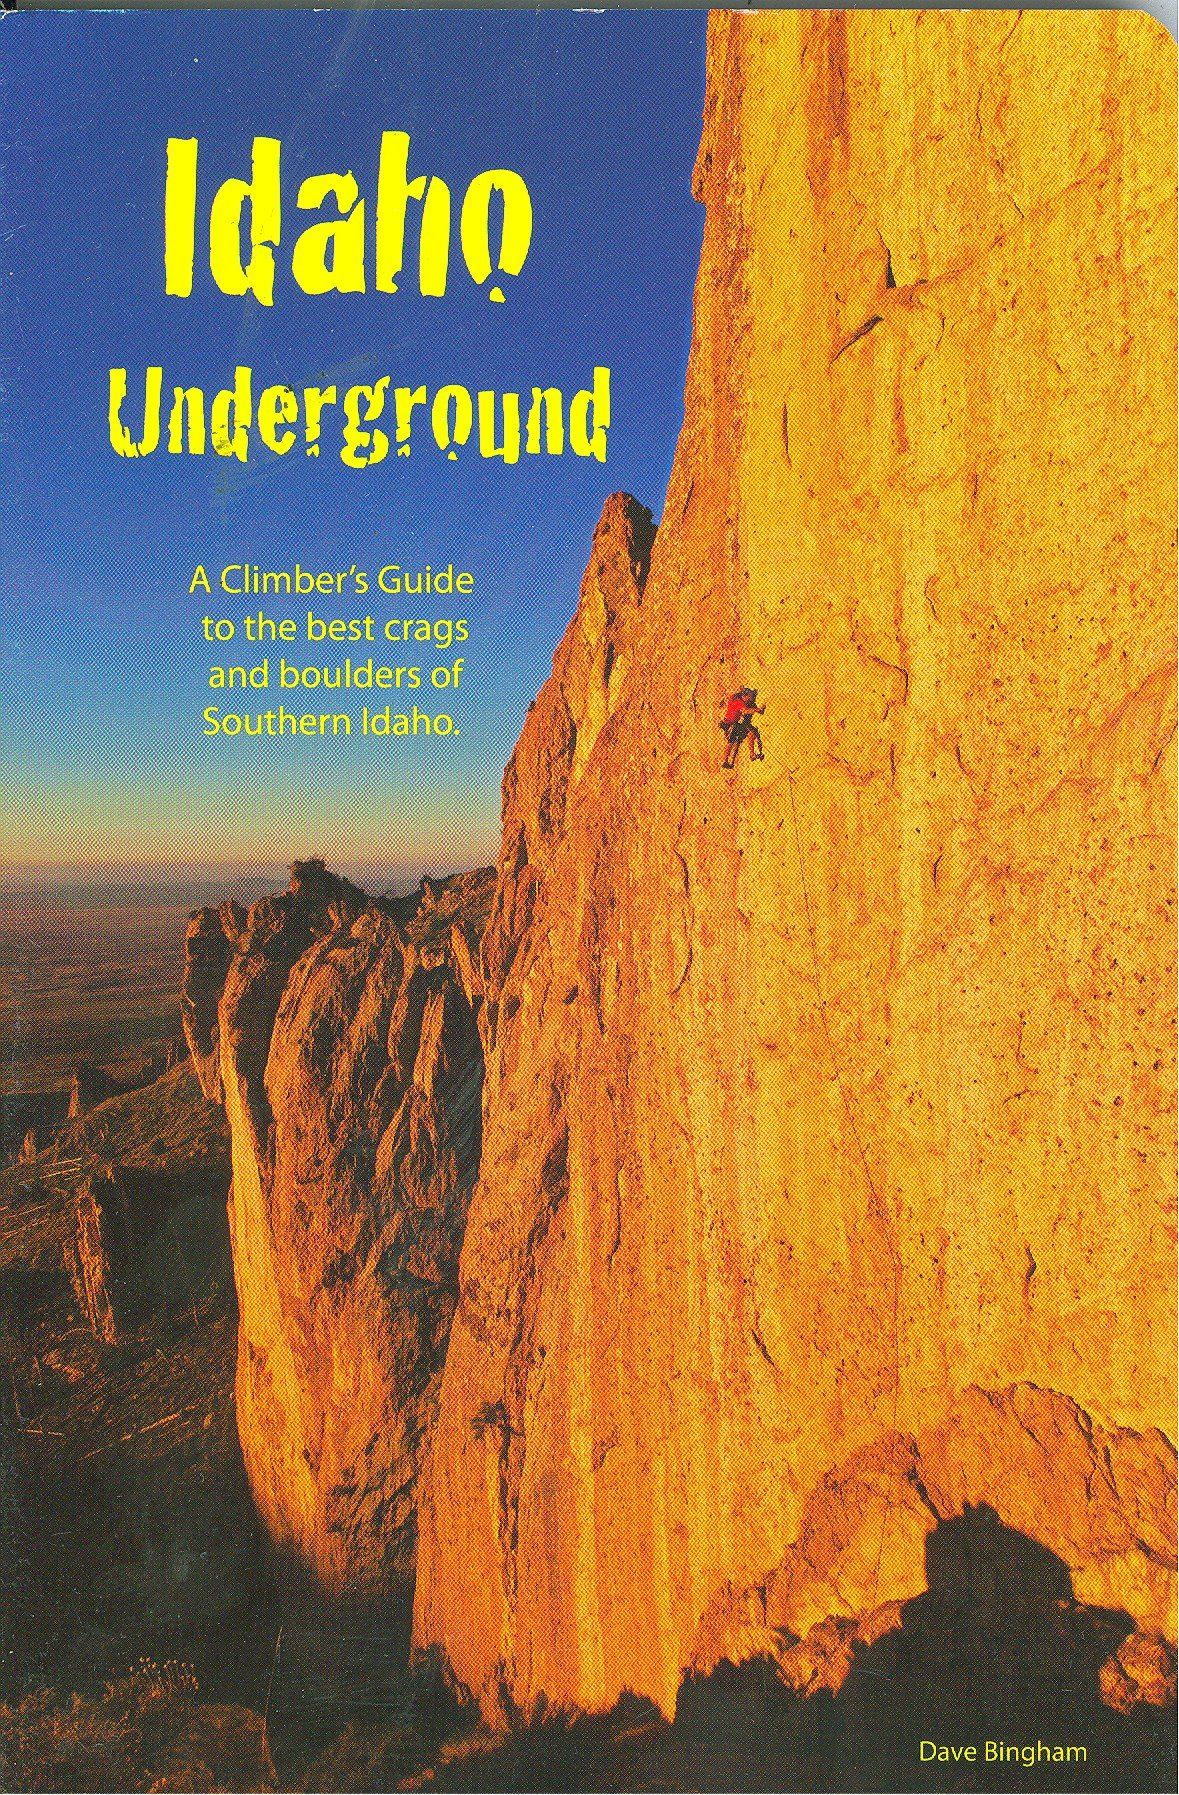 Idaho Underground: Climber's Guide to the Best Crags and Boulders of  Southern Idaho 2012: Dave Bingham: 9780970096432: Amazon.com: Books